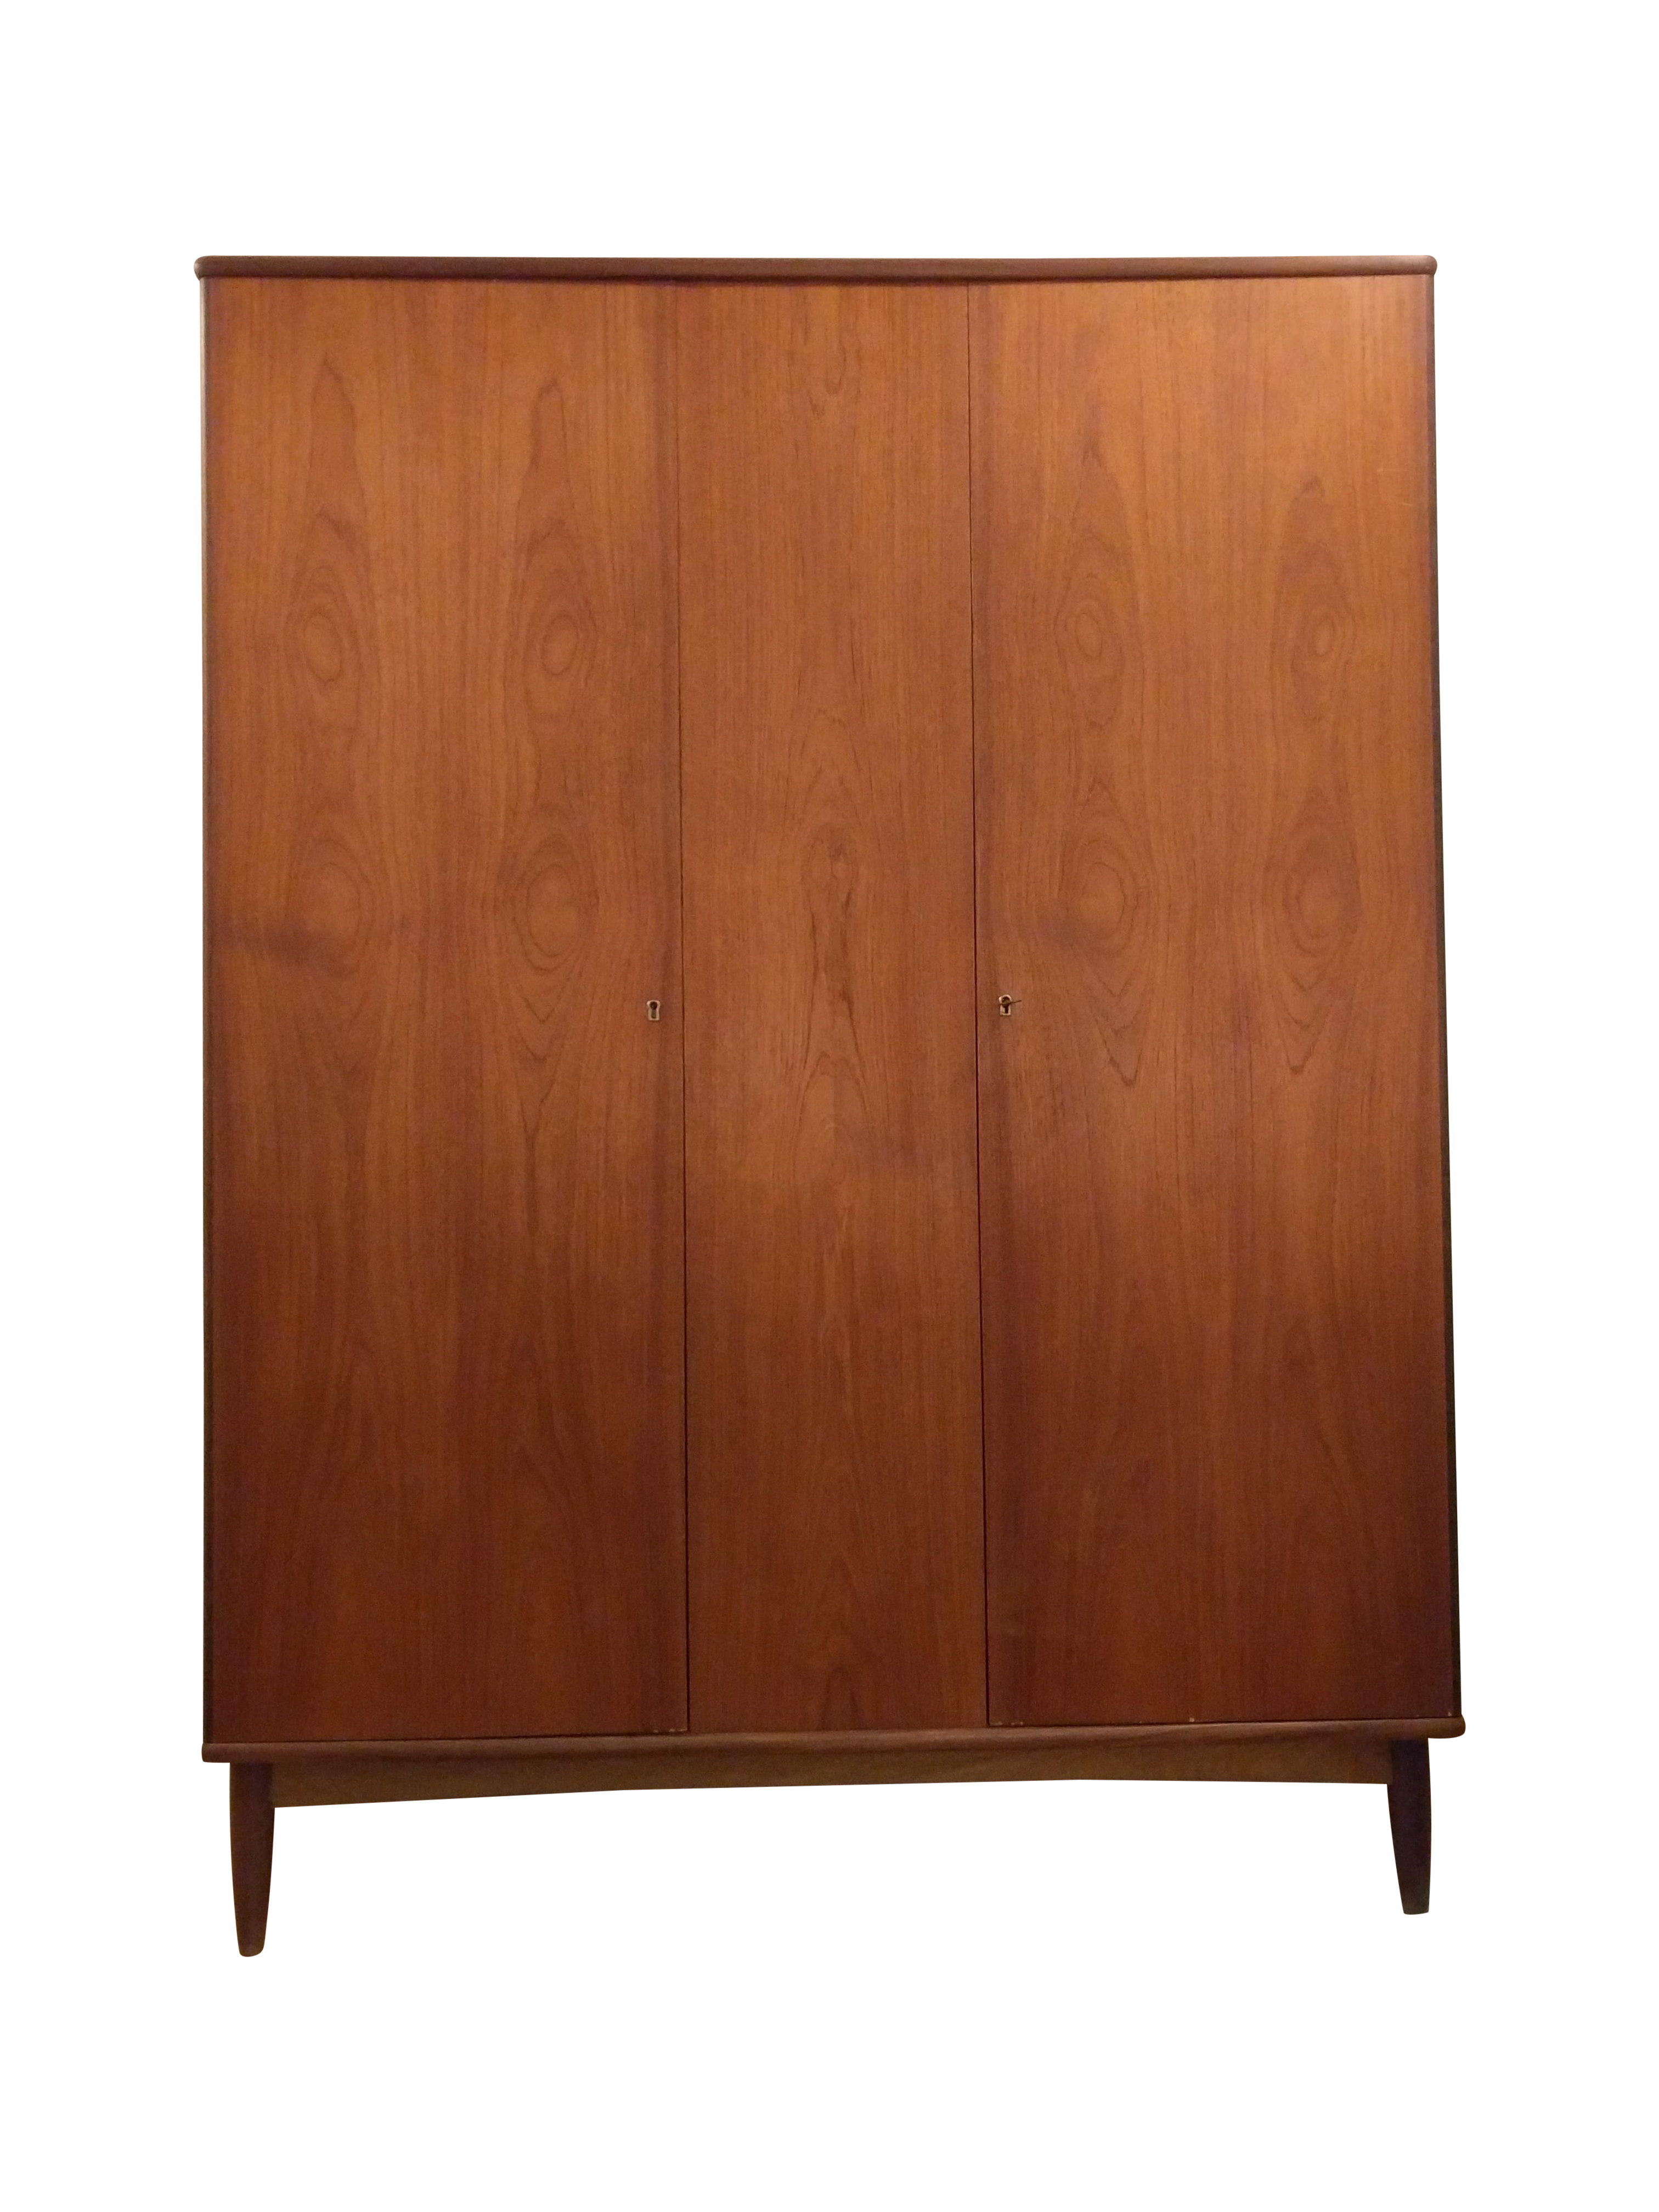 Armoires Dressings Mid Century Finnish Dressing Armoire On Chairish For The